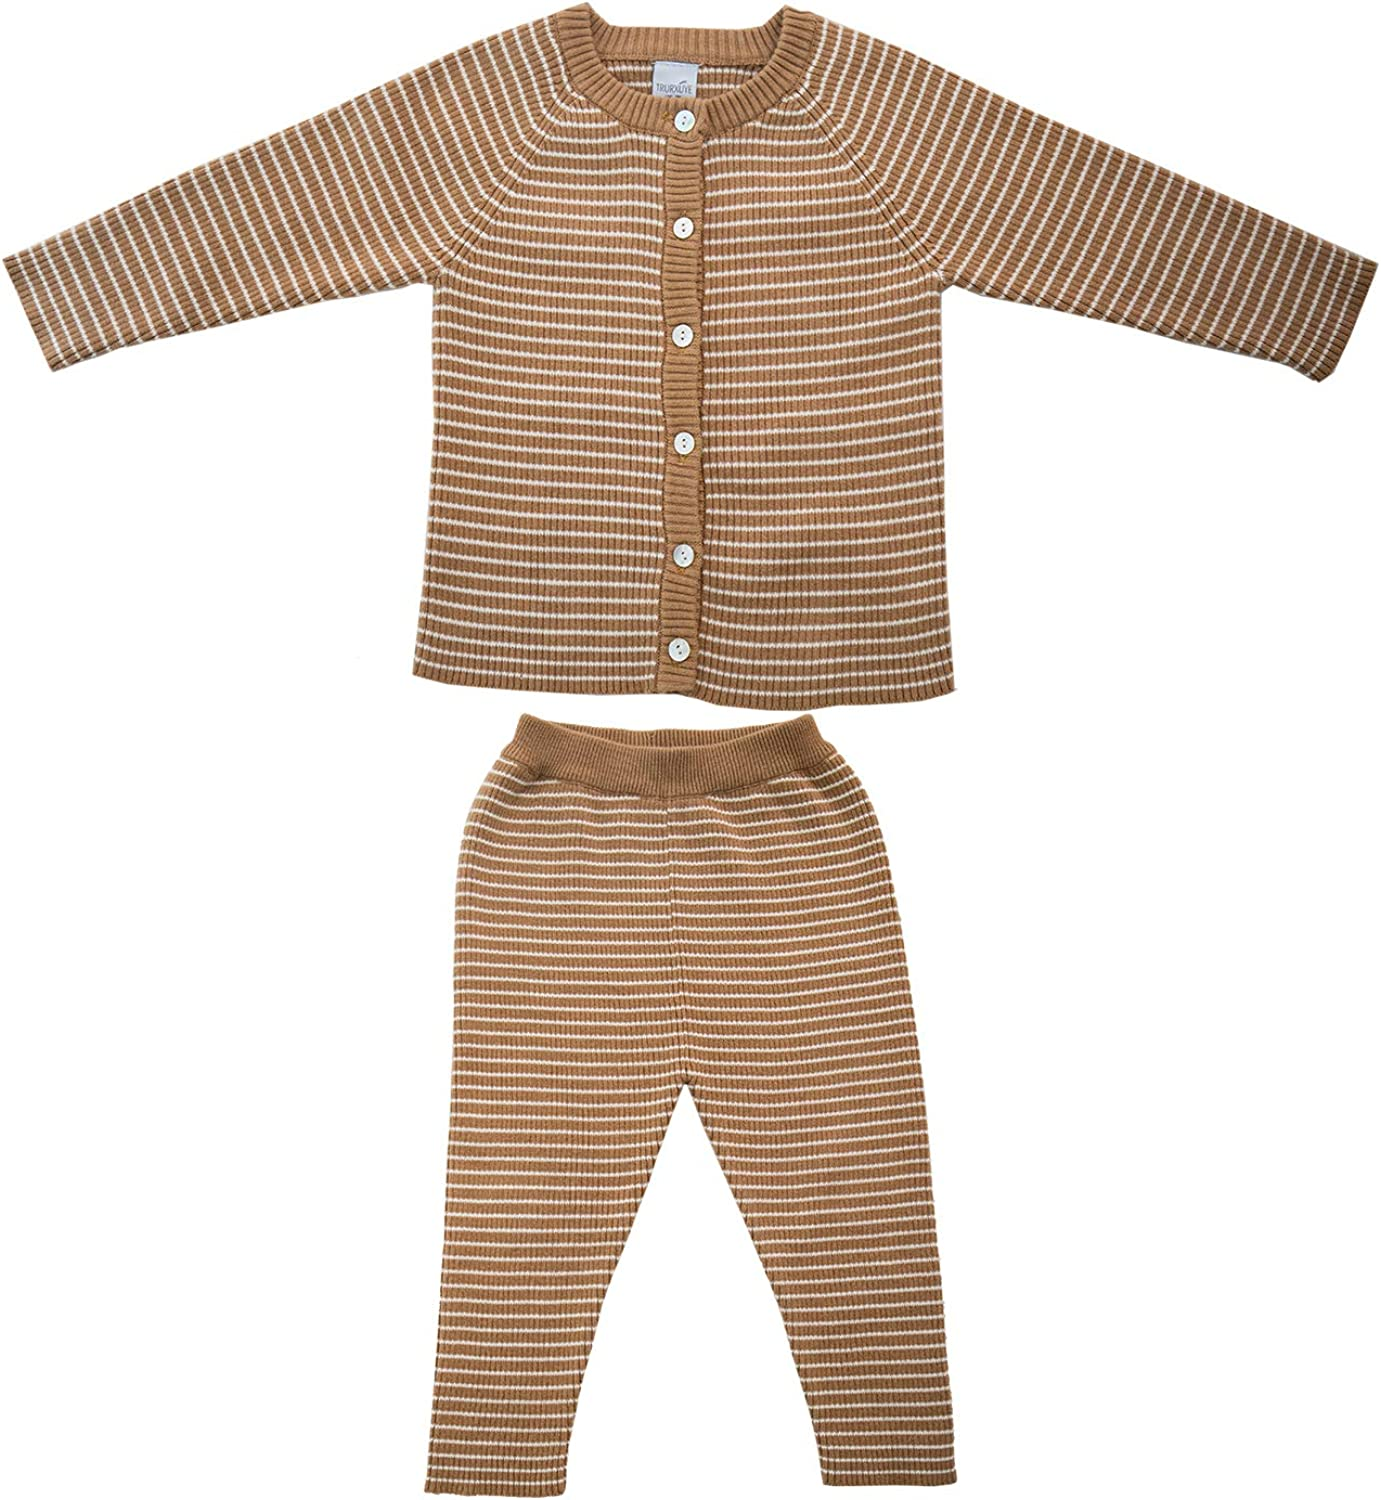 TRURXUYE Baby Knit Long Sleeve Ruffle Top and Pants Set, 2PCS Brown Striped Warm Bodysuit Clothing Sets for Fall Winter Wear